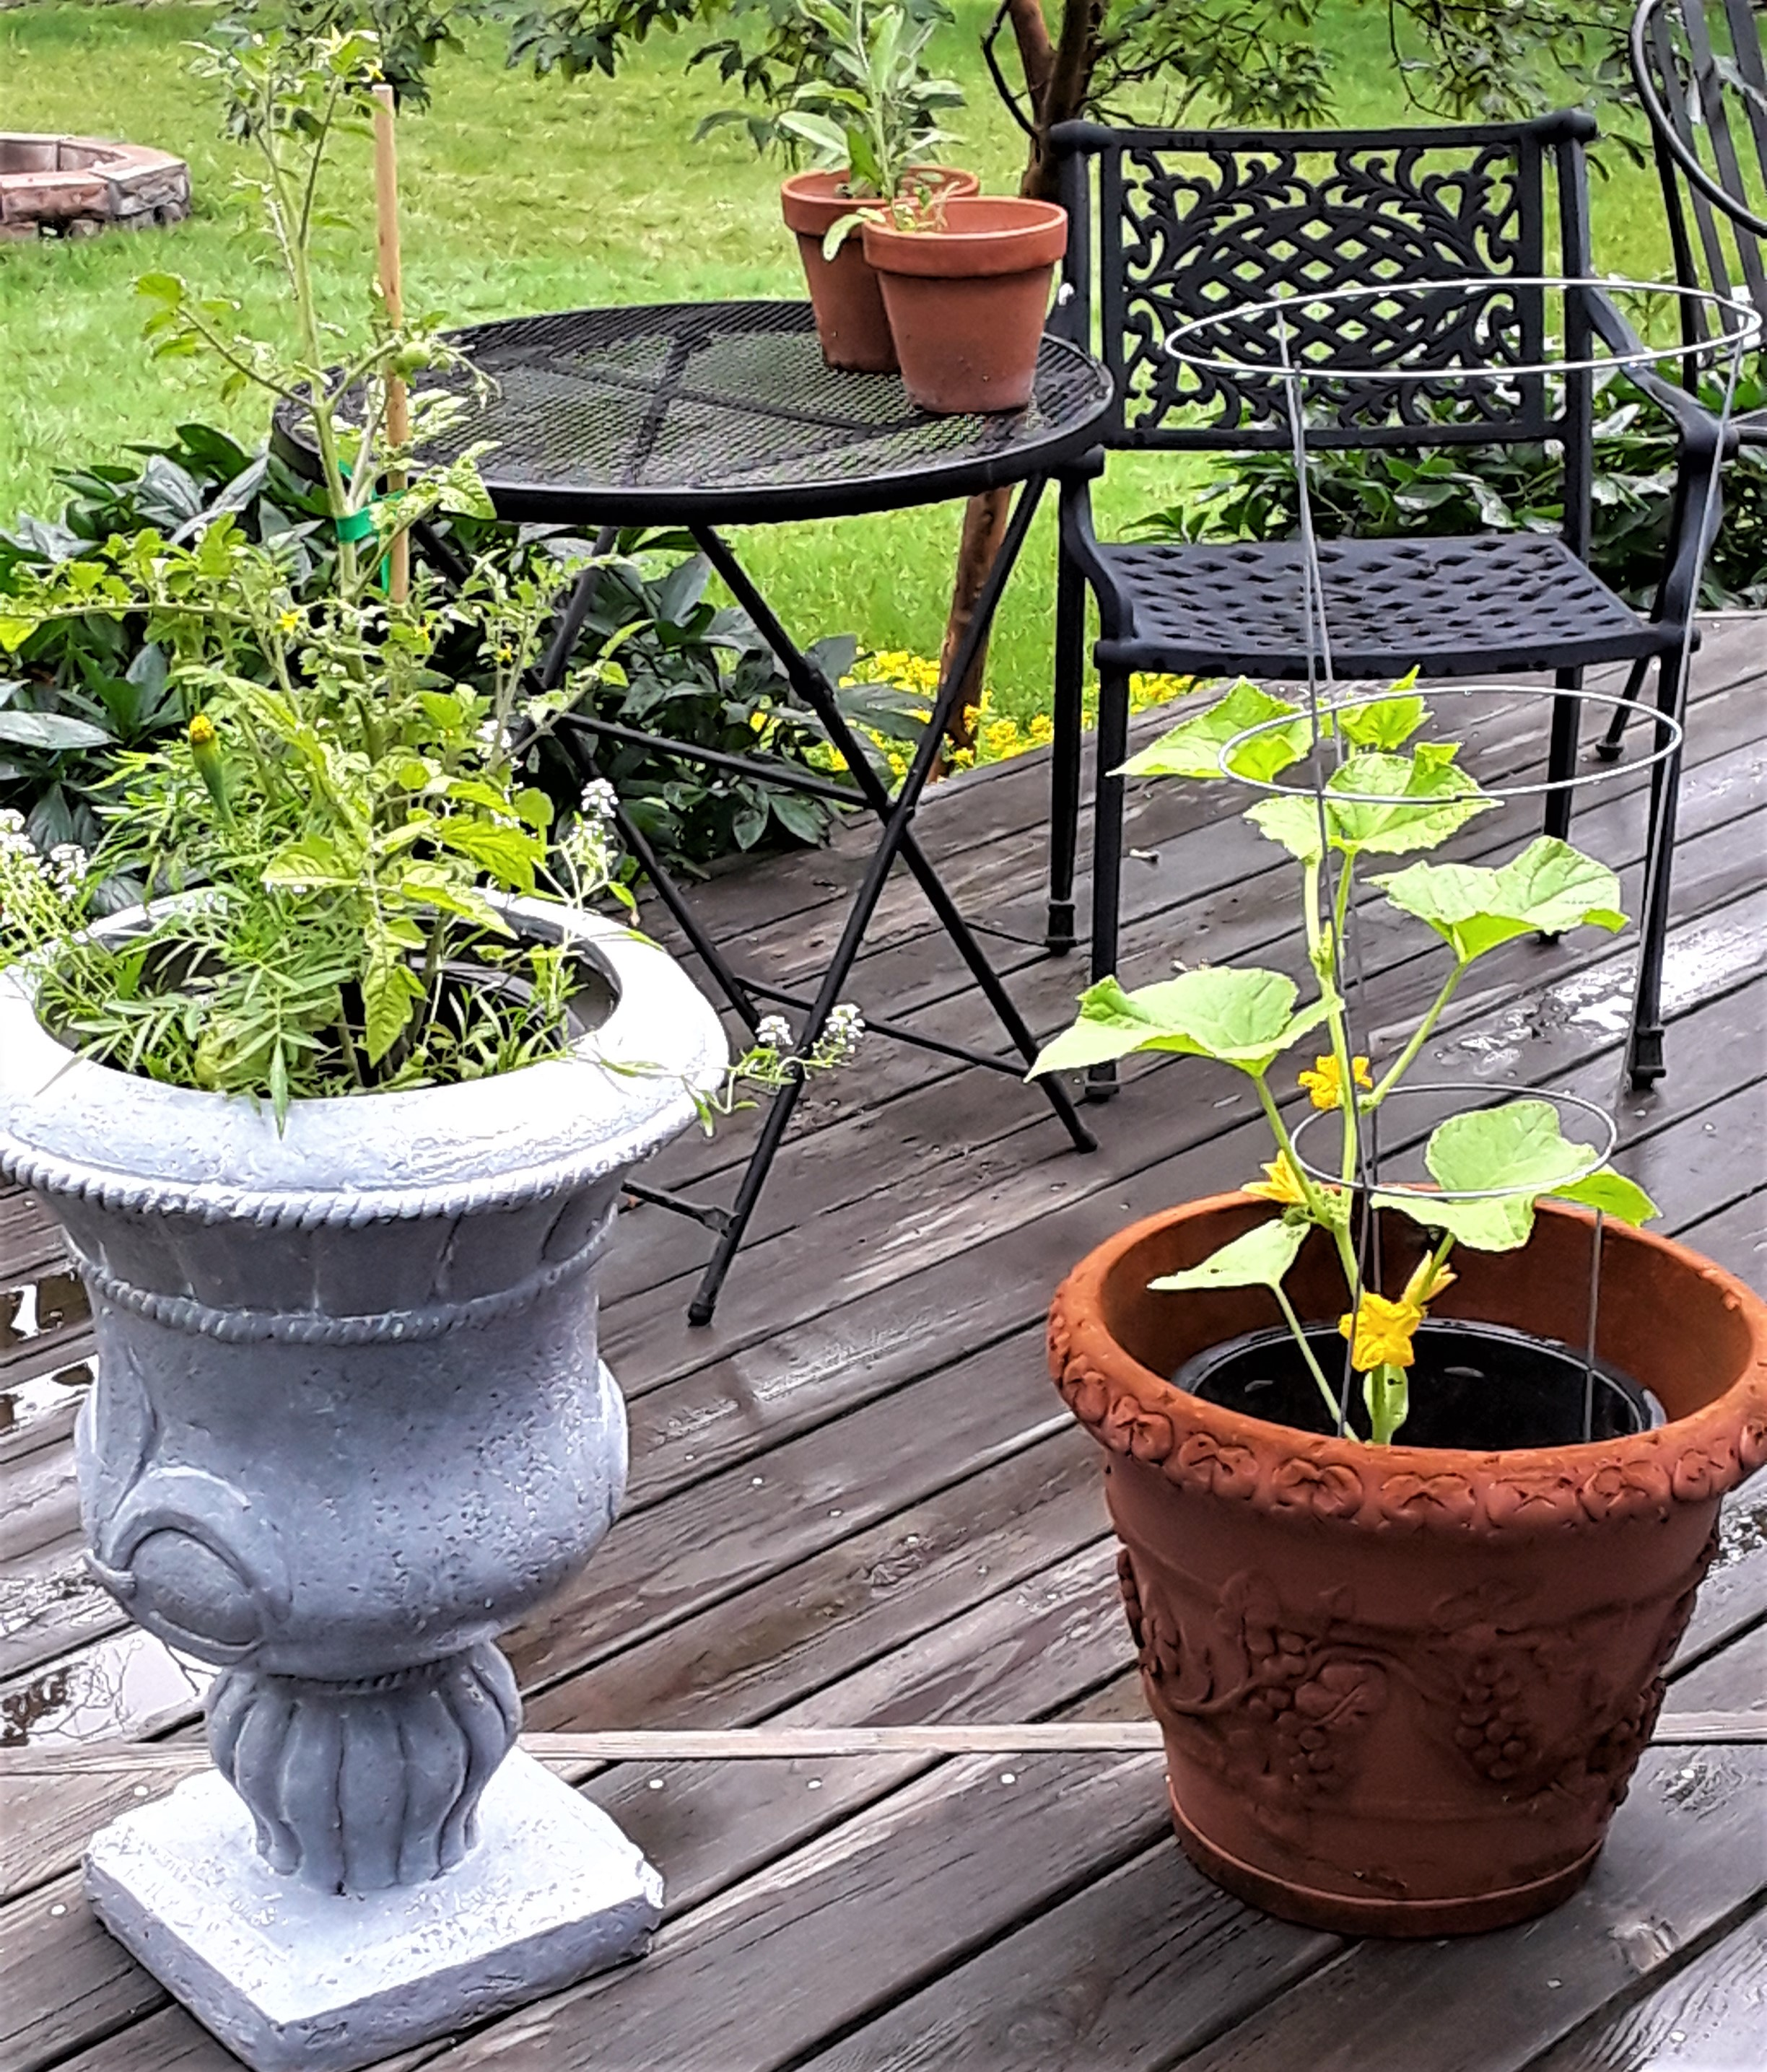 tomato plant and cucumber plant grow in pots on the deck